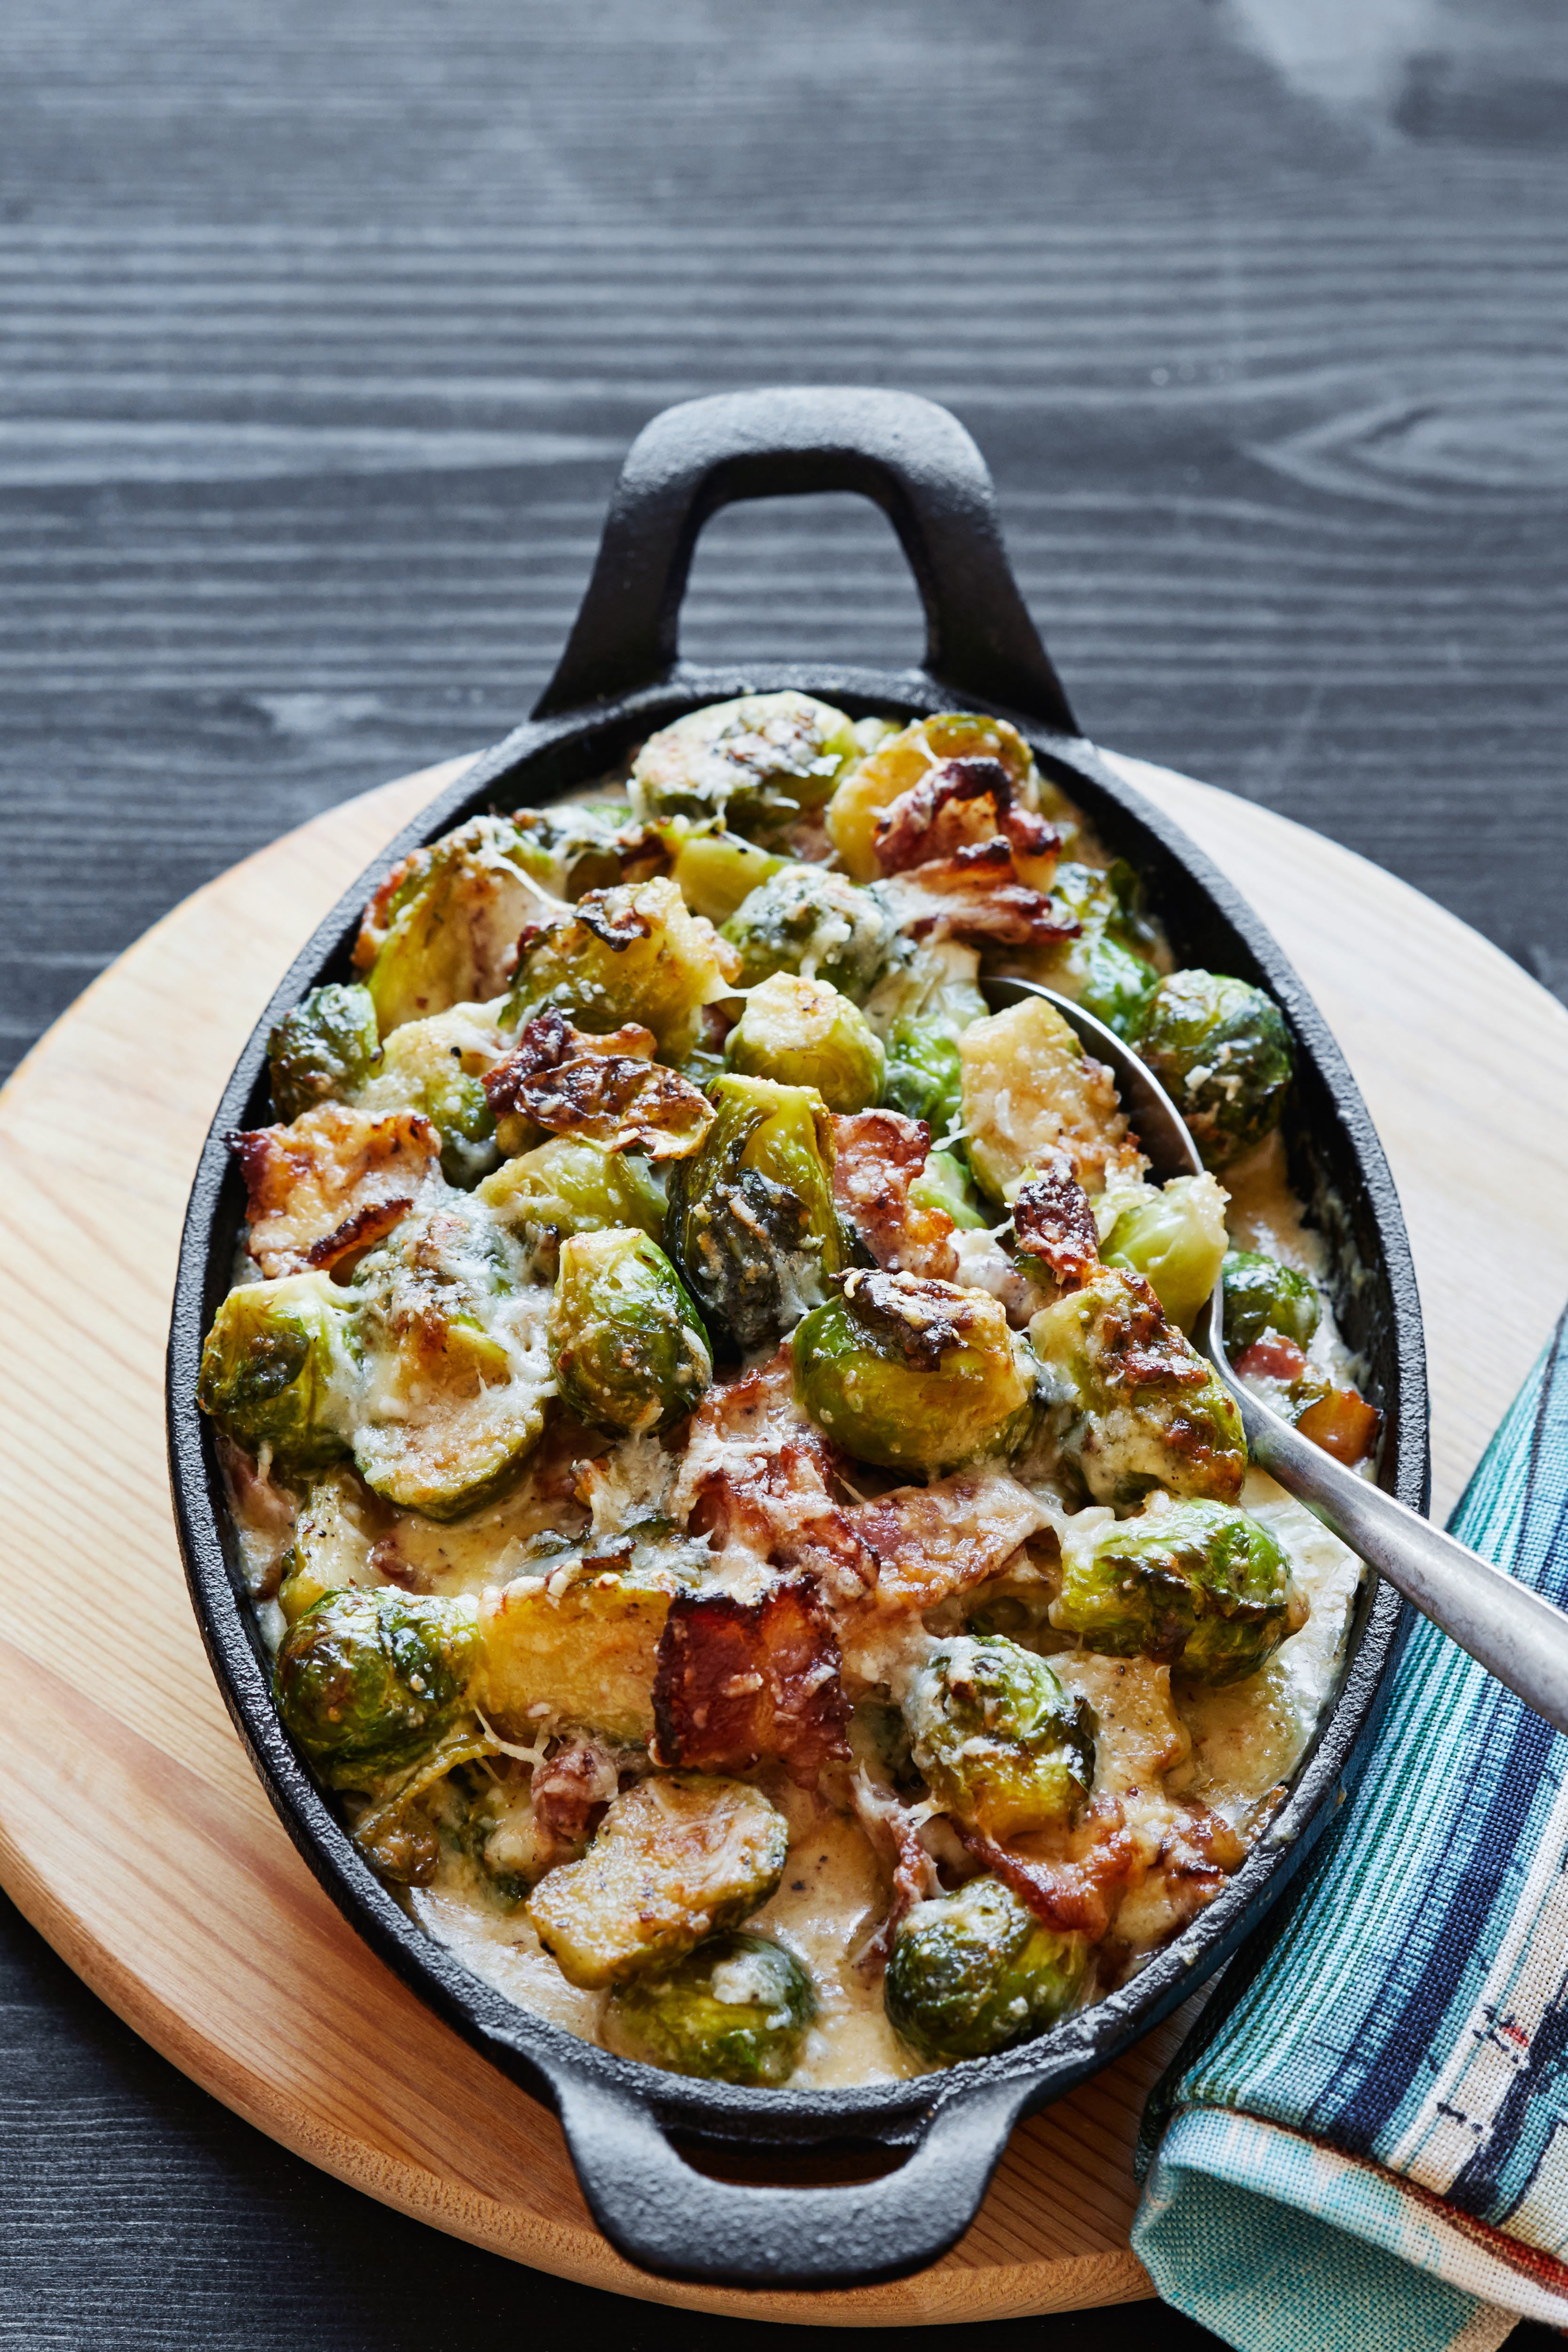 Brussels sprouts and bacon in a creamy parmesan sauce